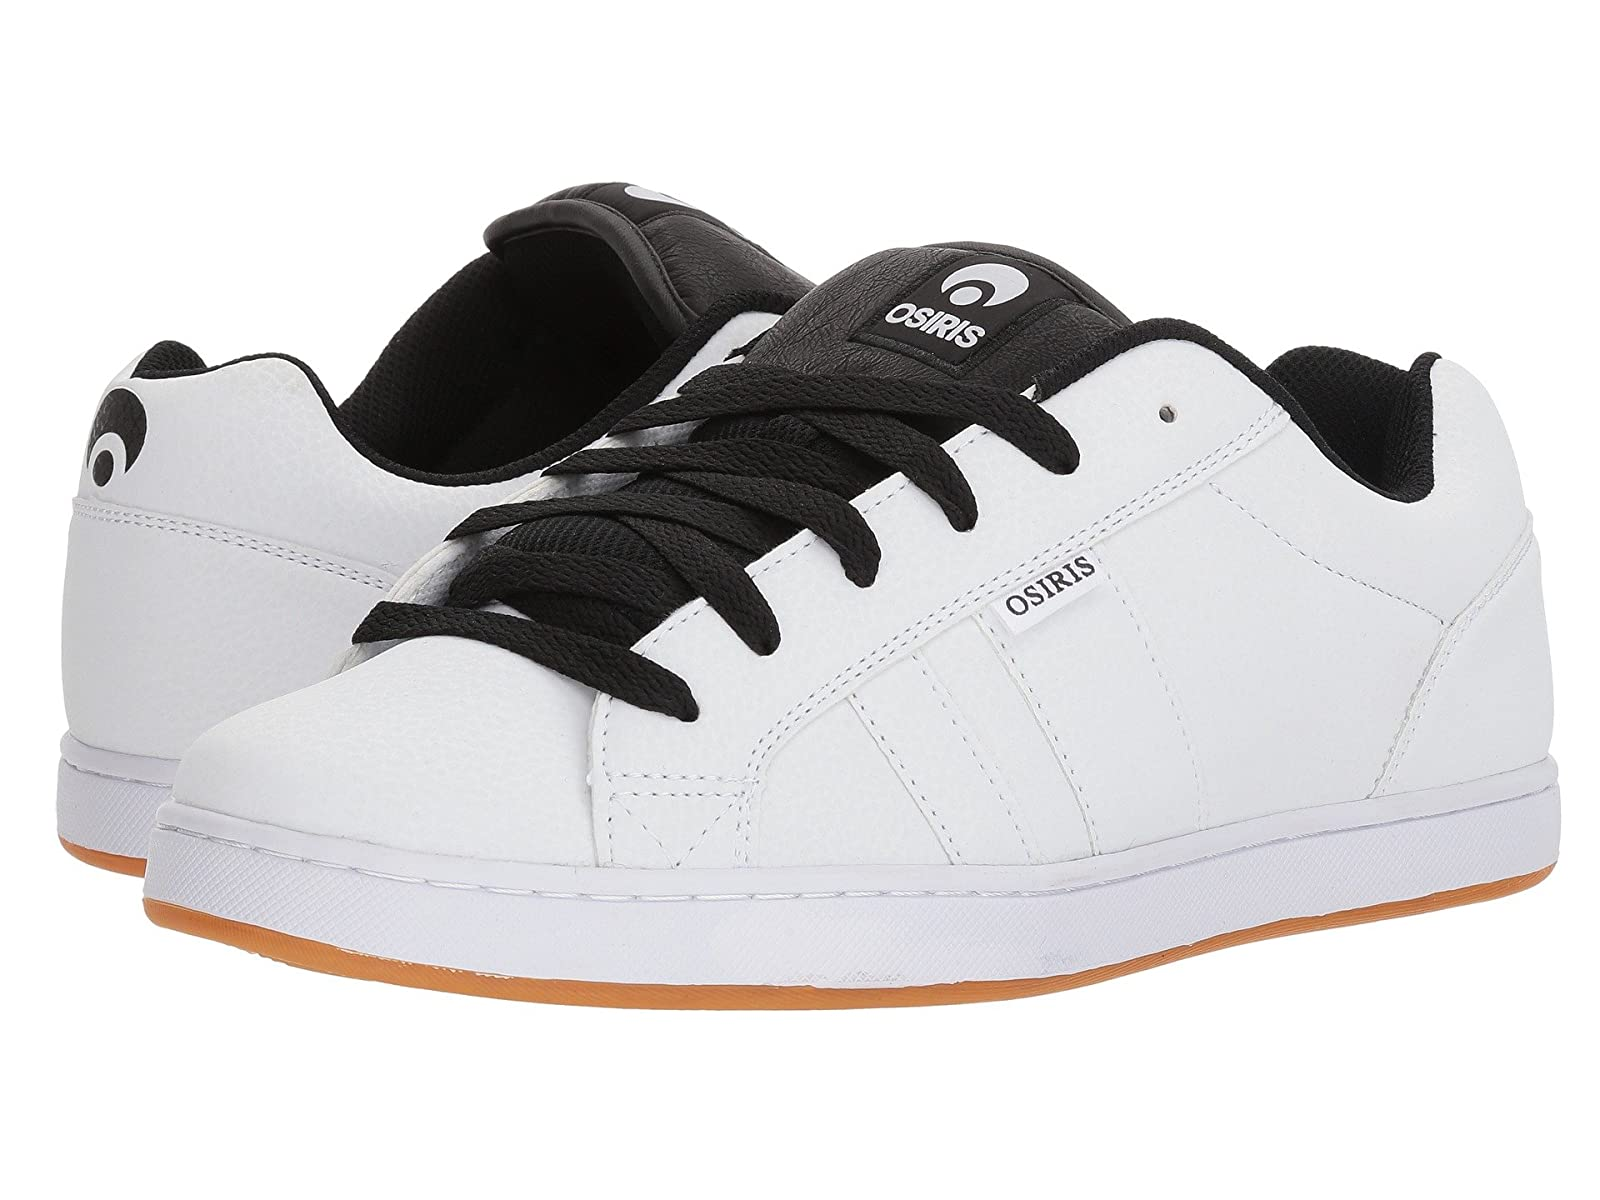 Osiris LootAtmospheric grades have affordable shoes